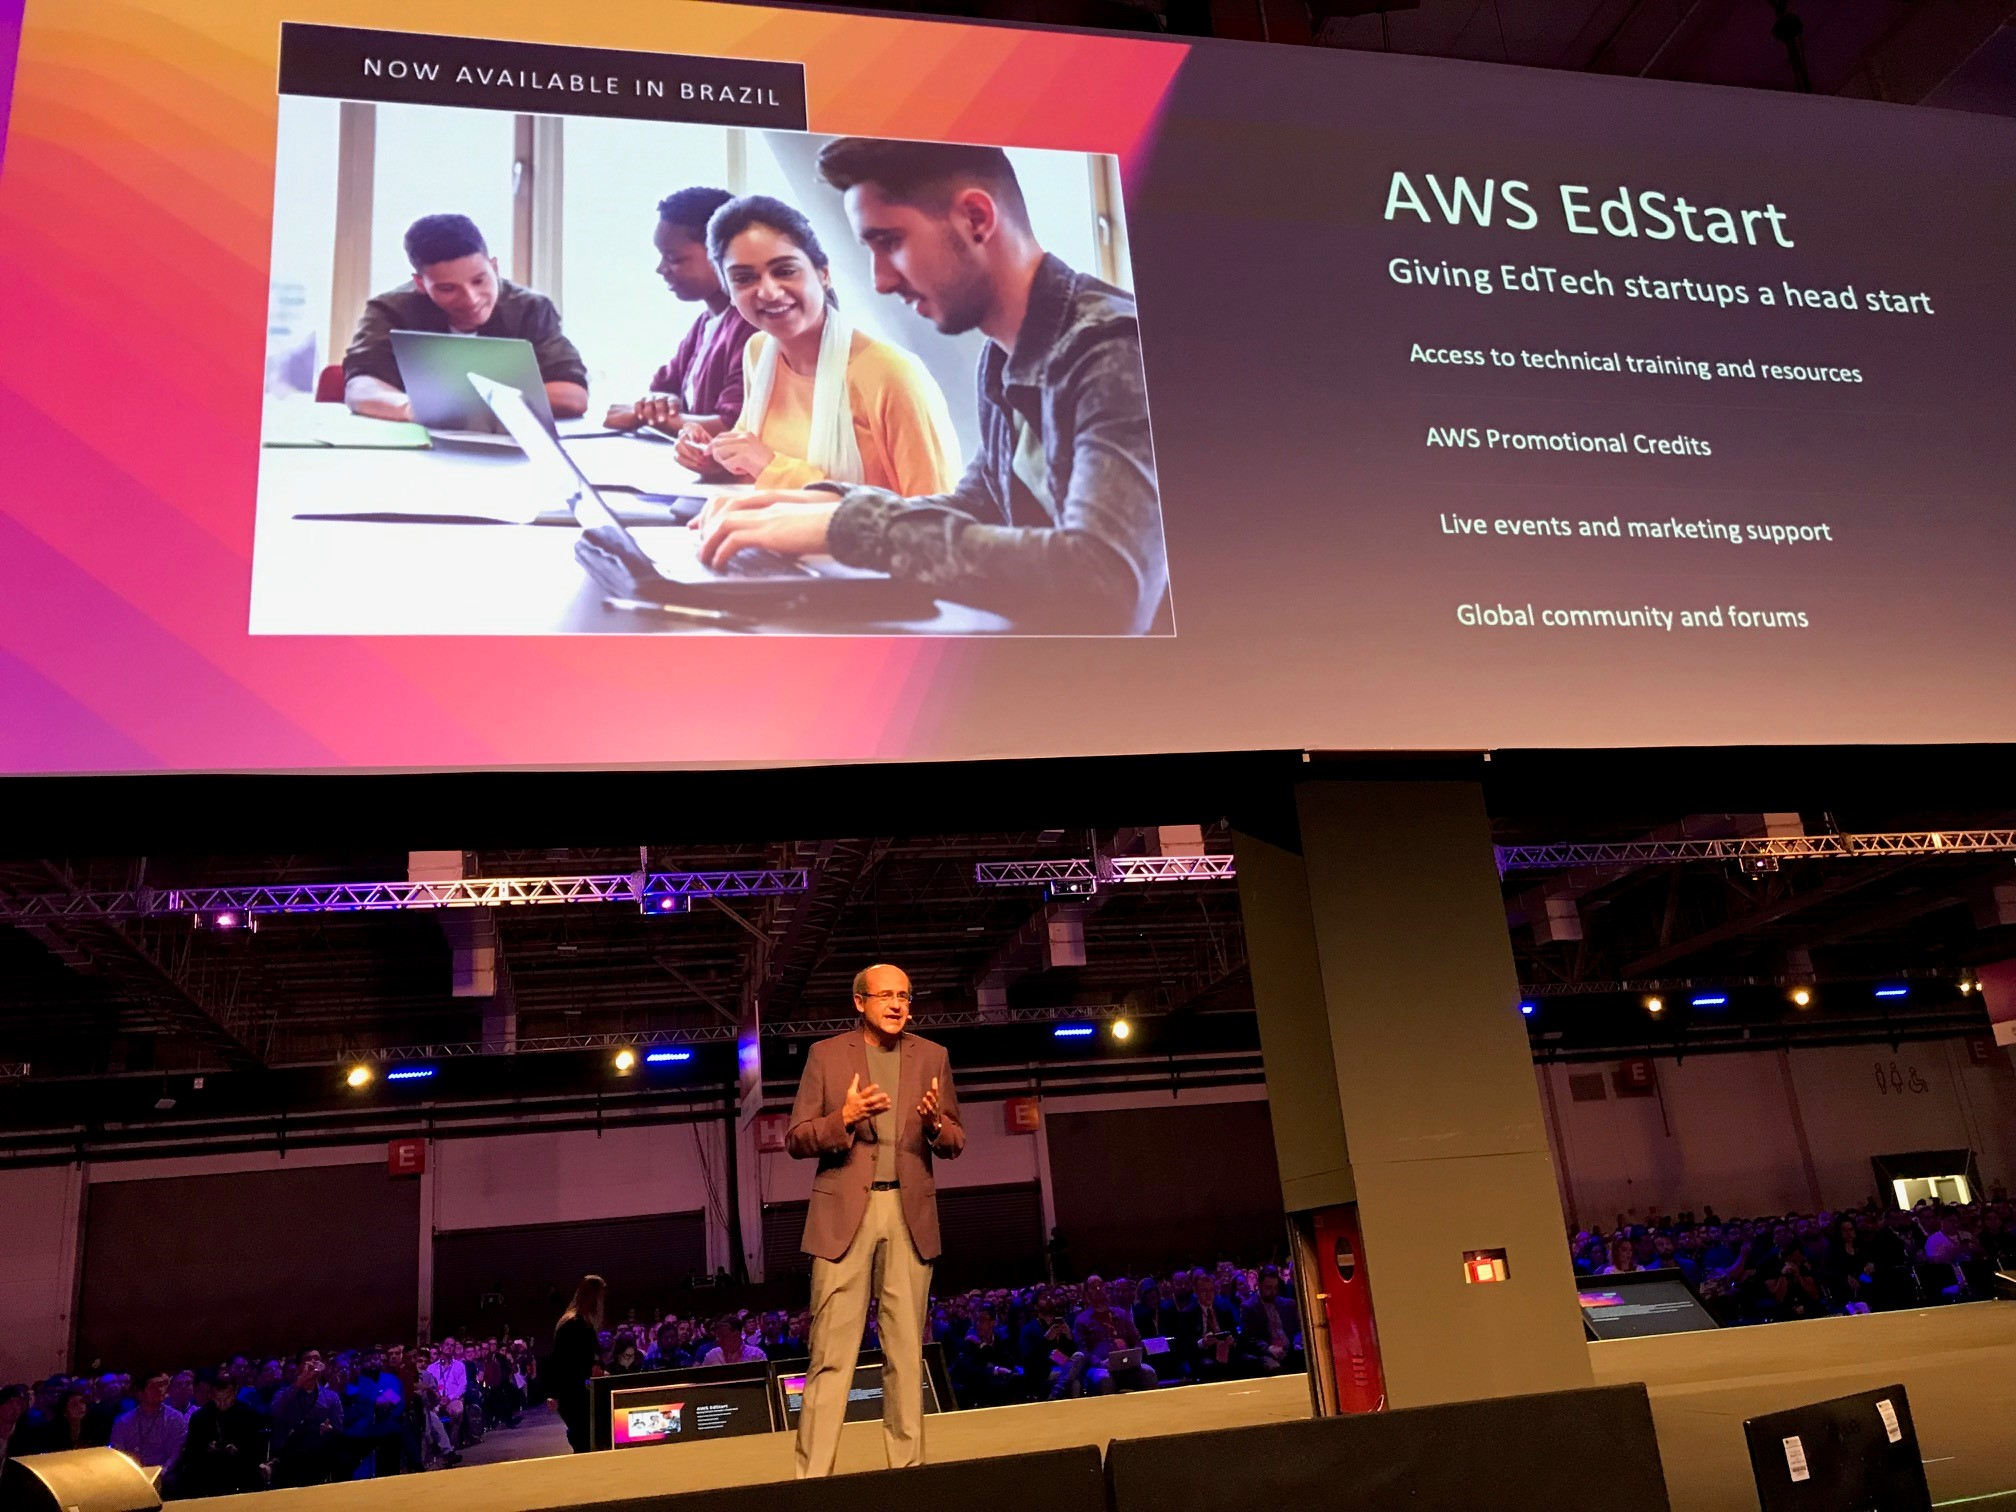 AWS EdStart Goes to South America to Bring Resources to